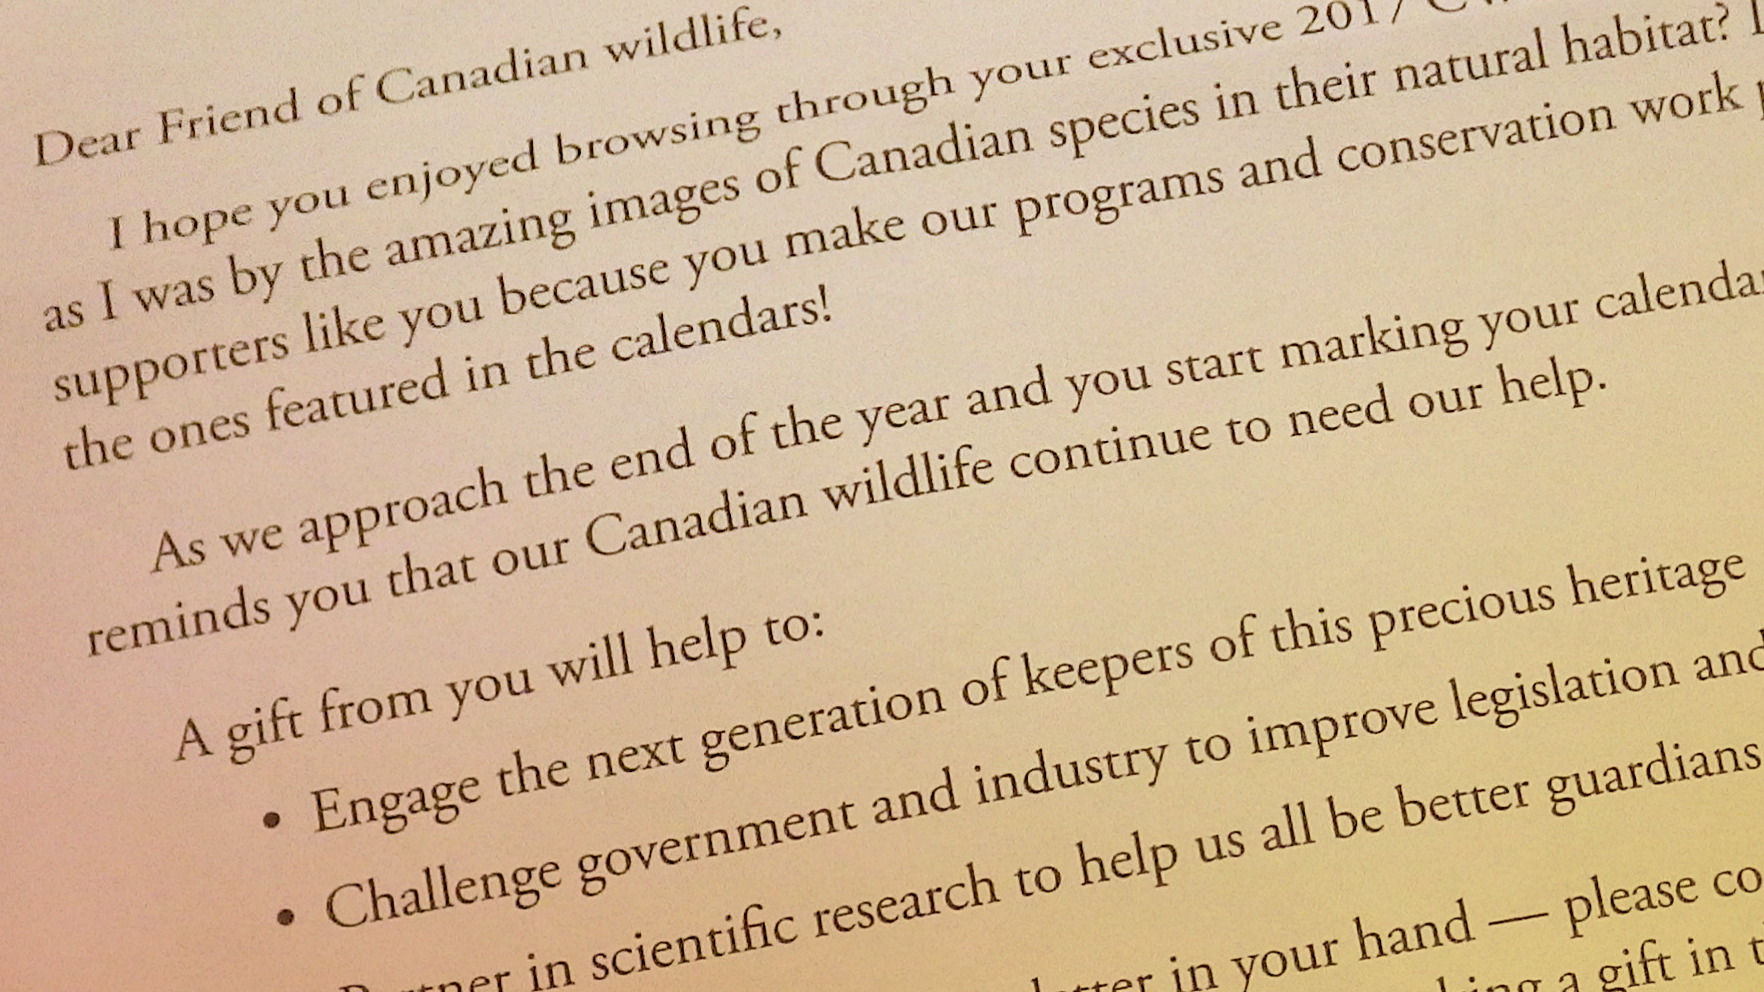 The HunterBacked Canadian Wildlife Federation Charity Is A Wolf In